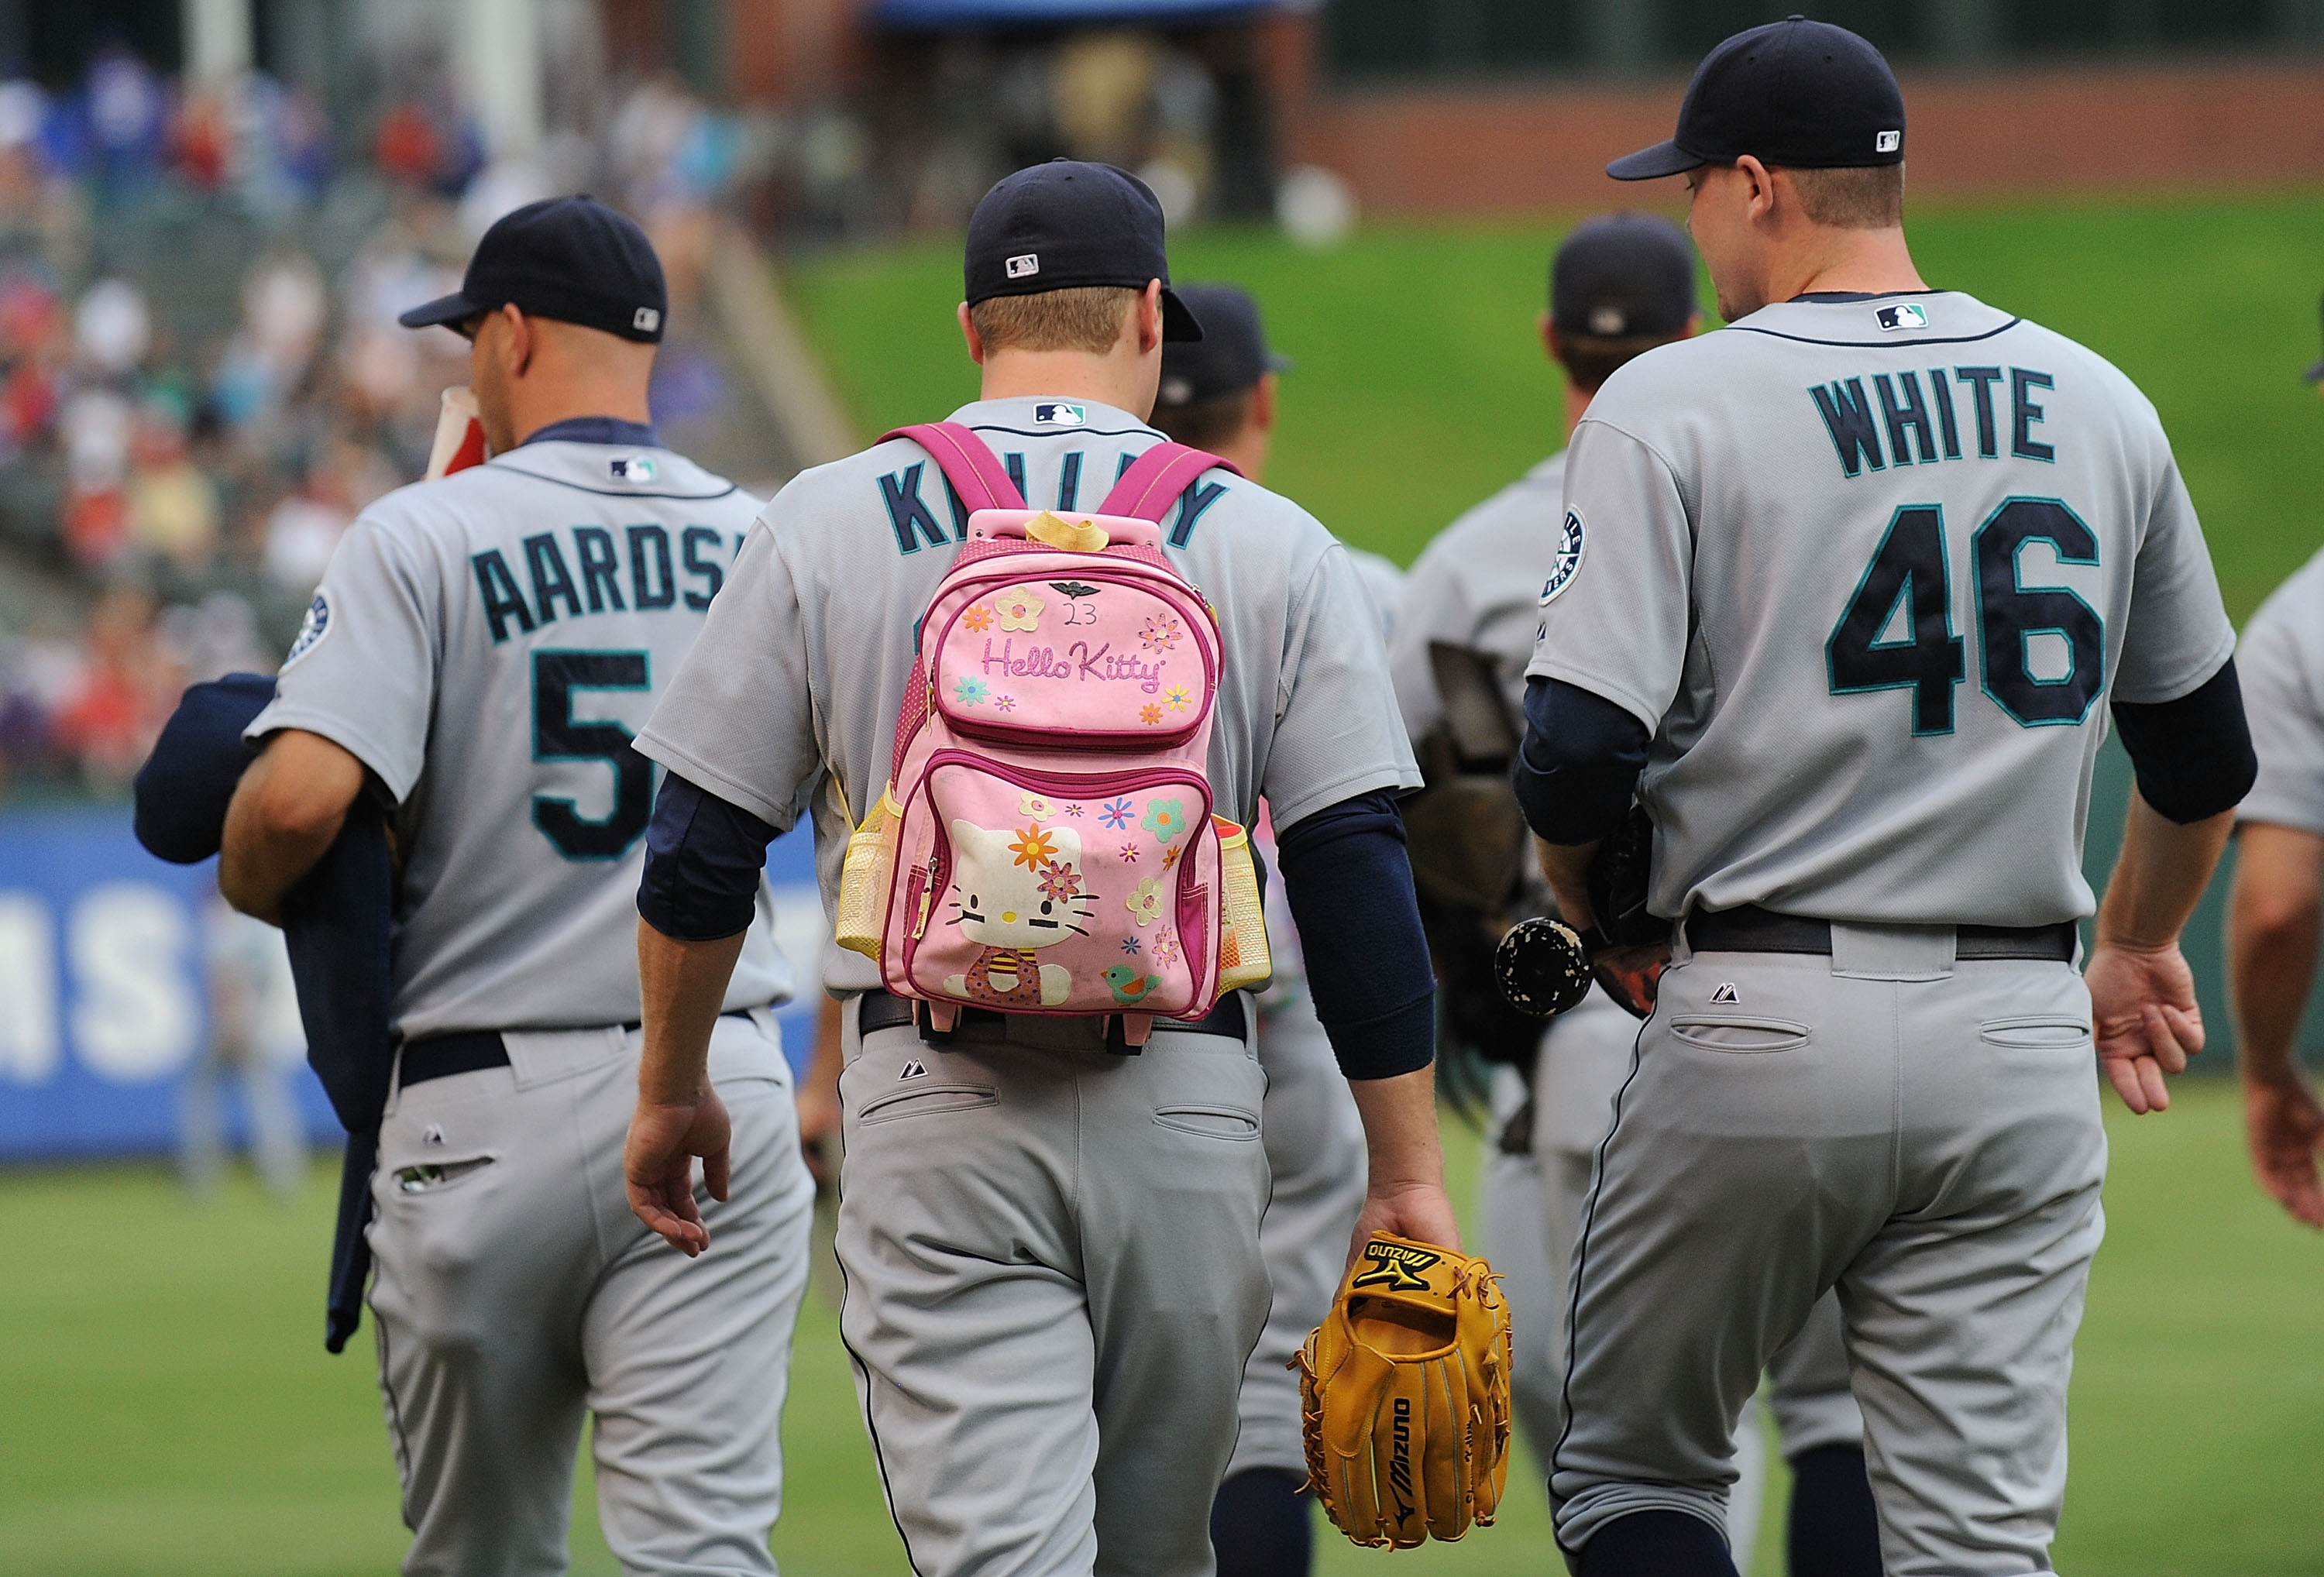 ARLINGTON, TX - JULY 31:  Rookie pitcher Shawn Kelley #23 of the Seattle Mariners walks to the bullpen while wearing a 'Hello Kitty' backpack before a game with the Texas Rangers on July 31, 2009 at Rangers Ballpark in Arlington, Texas.  (Photo by Ronald